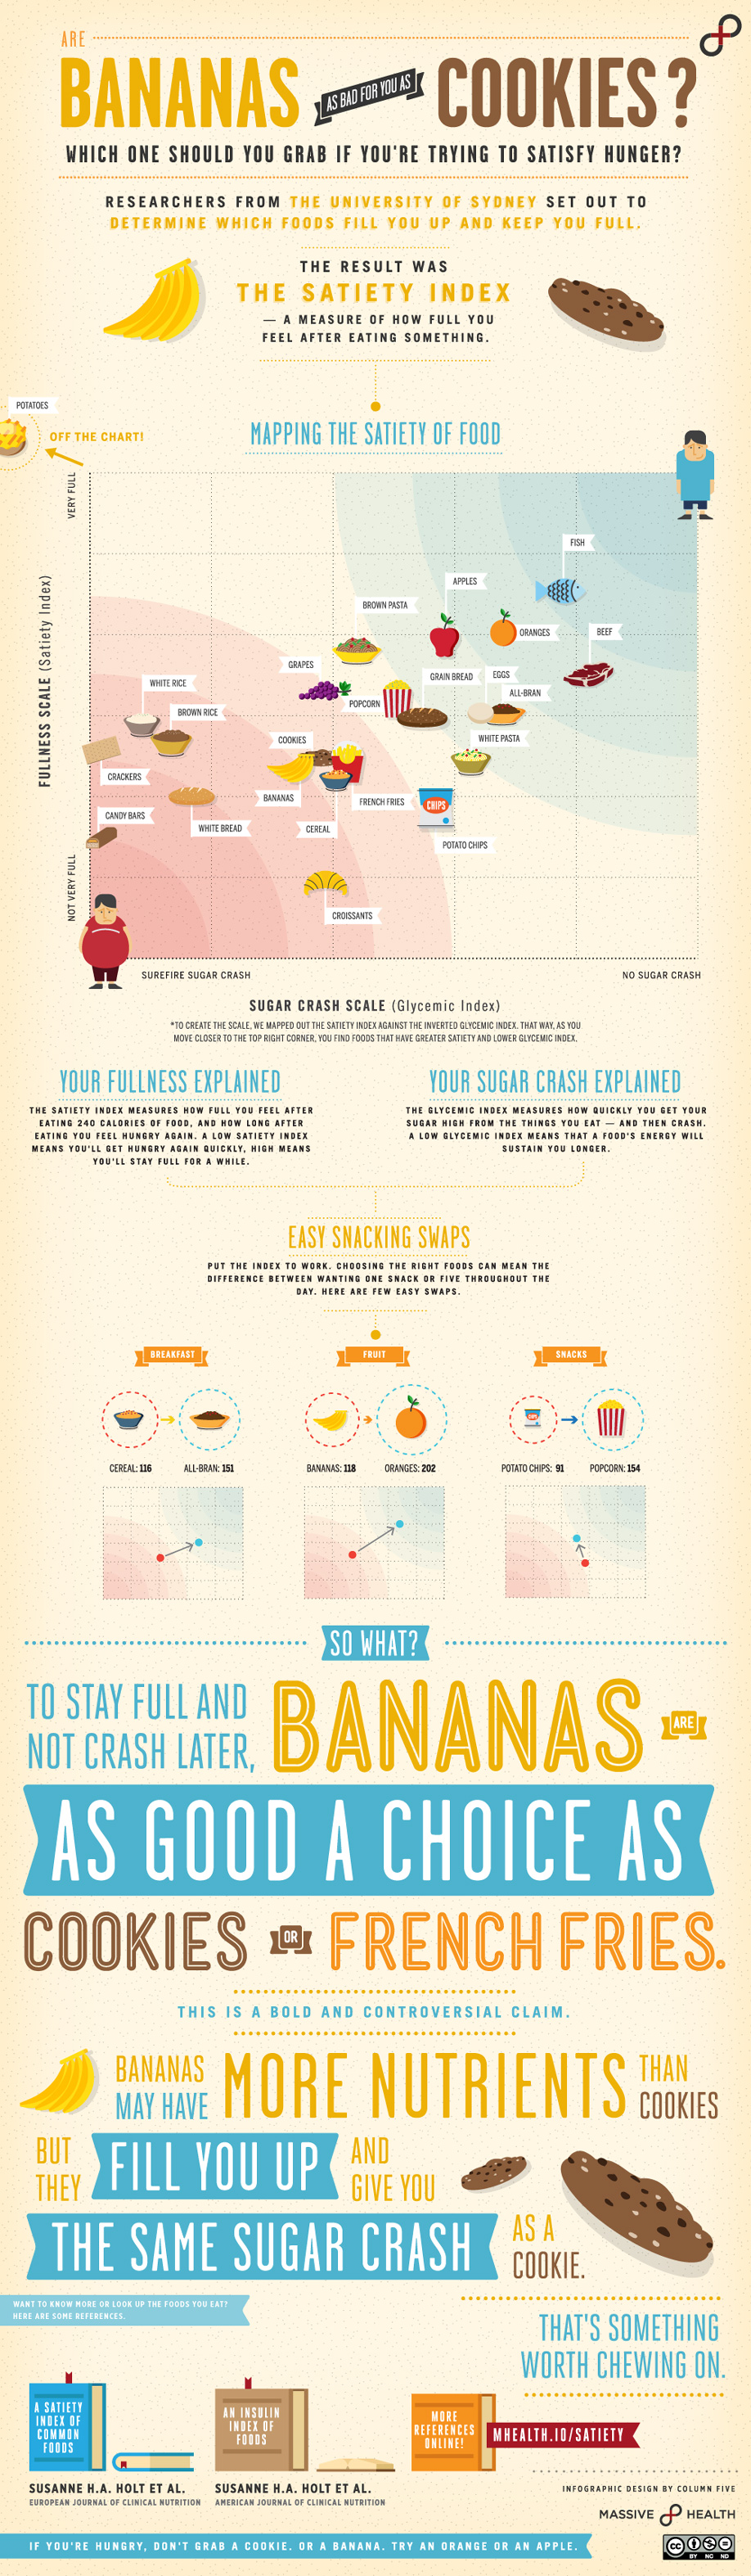 Infographic: Are Bananas Really As Bad for You as Cookies?